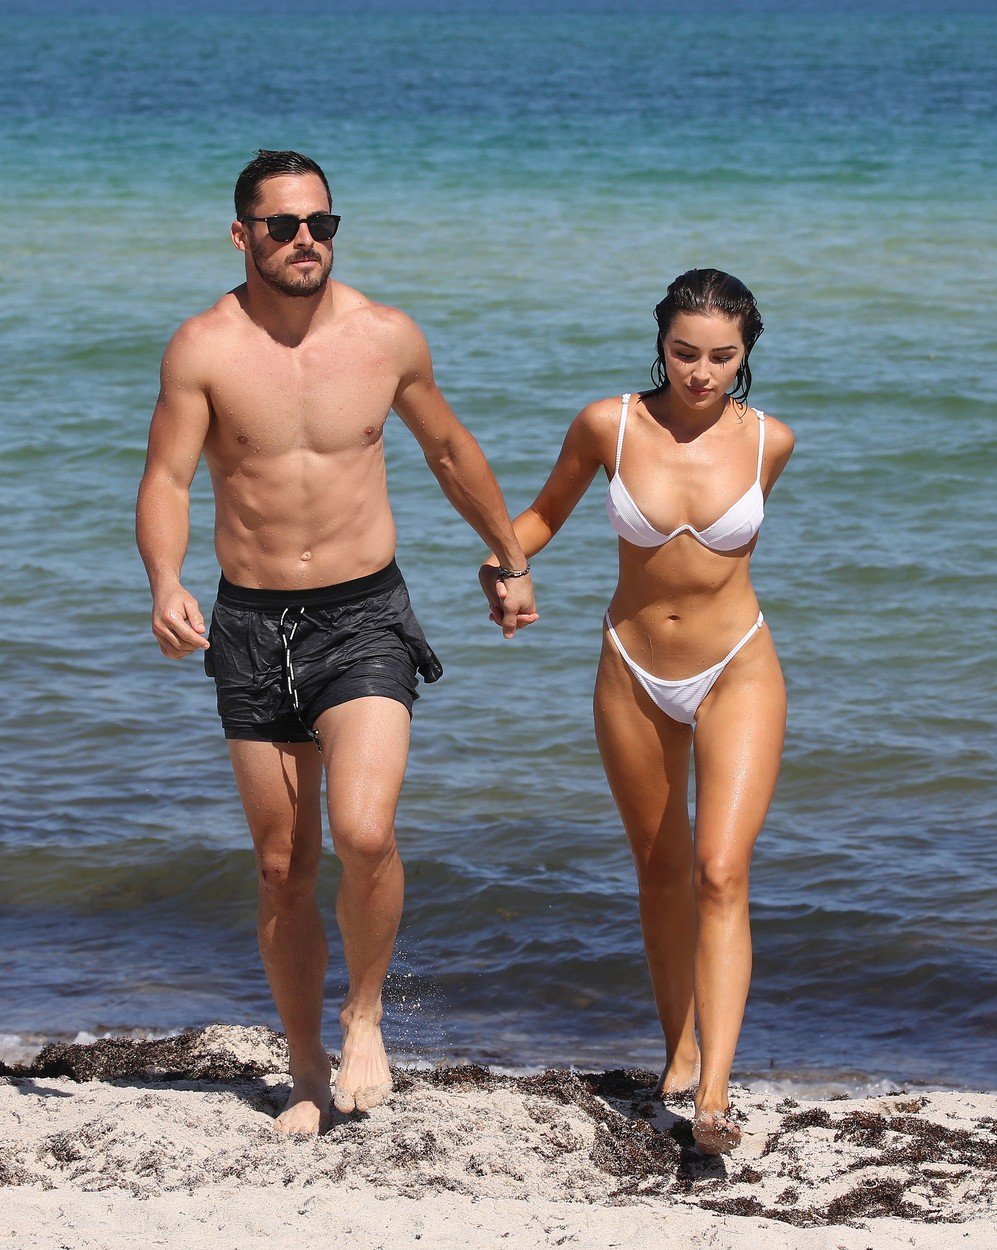 Bikini clad Model Olivia Culpo and NFL player Danny Amendola are clearly back together as they hold hands  on the beach in Miami. 25 Sep 2018, Image: 388375483, License: Rights-managed, Restrictions: World Rights, Model Release: no, Credit line: Profimedia, Mega Agency